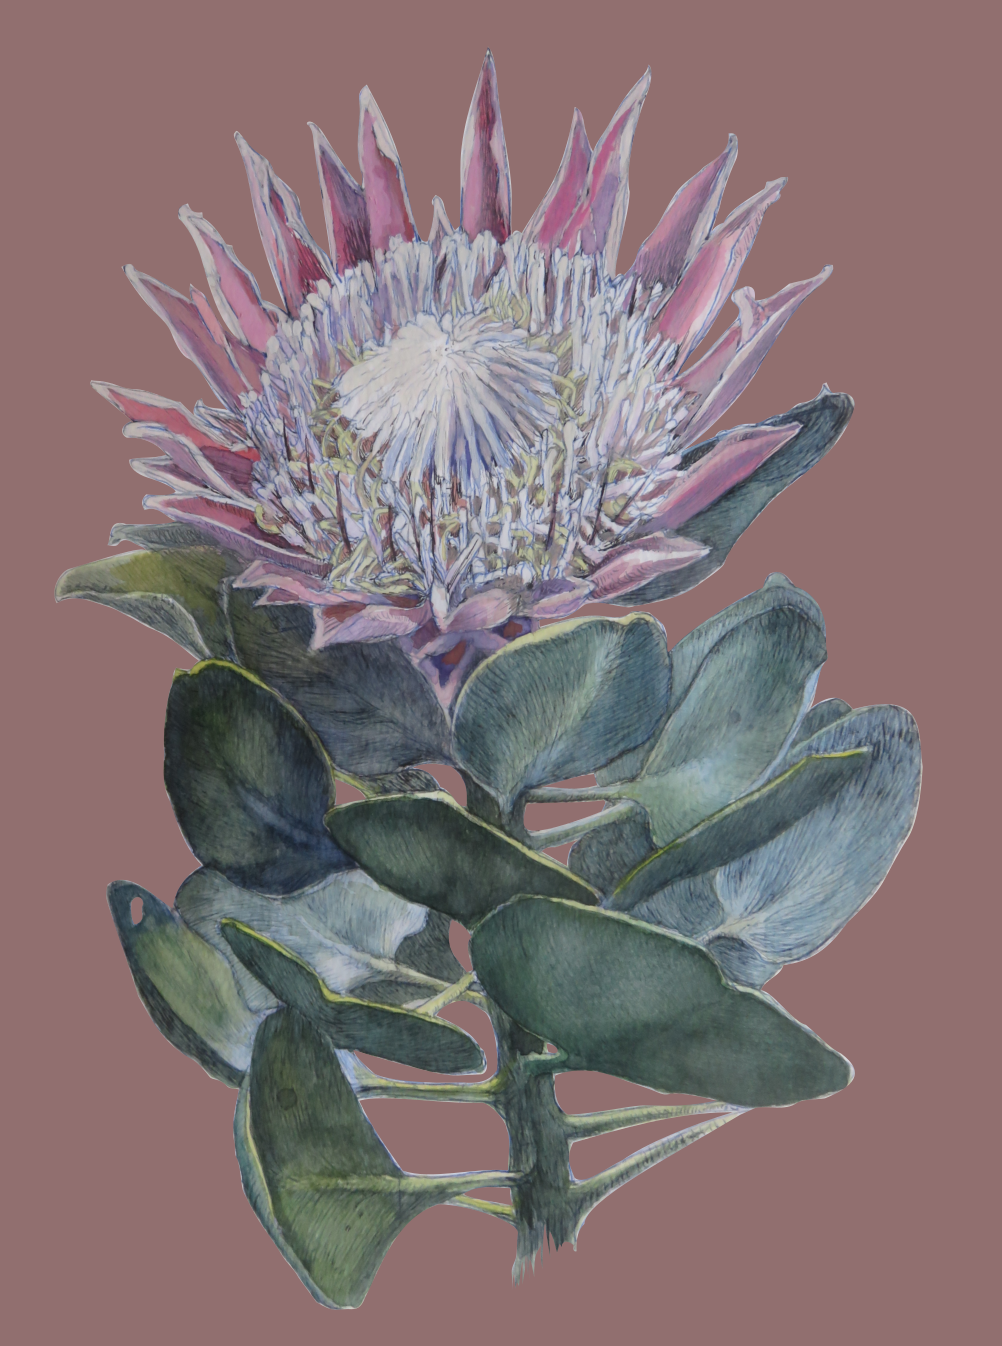 Protea cynaroides painting also available on decor items, accessories and clothing.